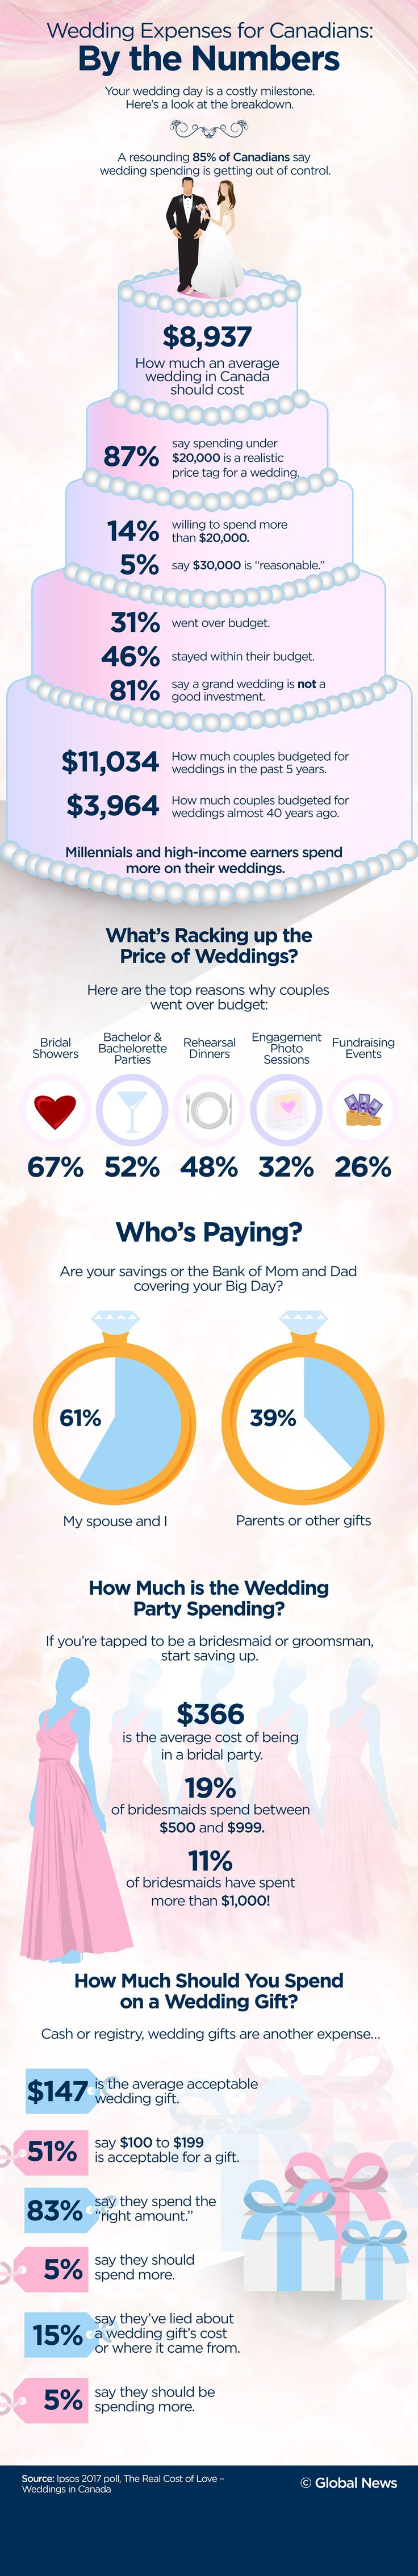 There's the wedding, gifts, showers, bachelorette parties and the honeymoon. Turns out, getting married is a costly milestone for Canadian couples, and their family and friends.